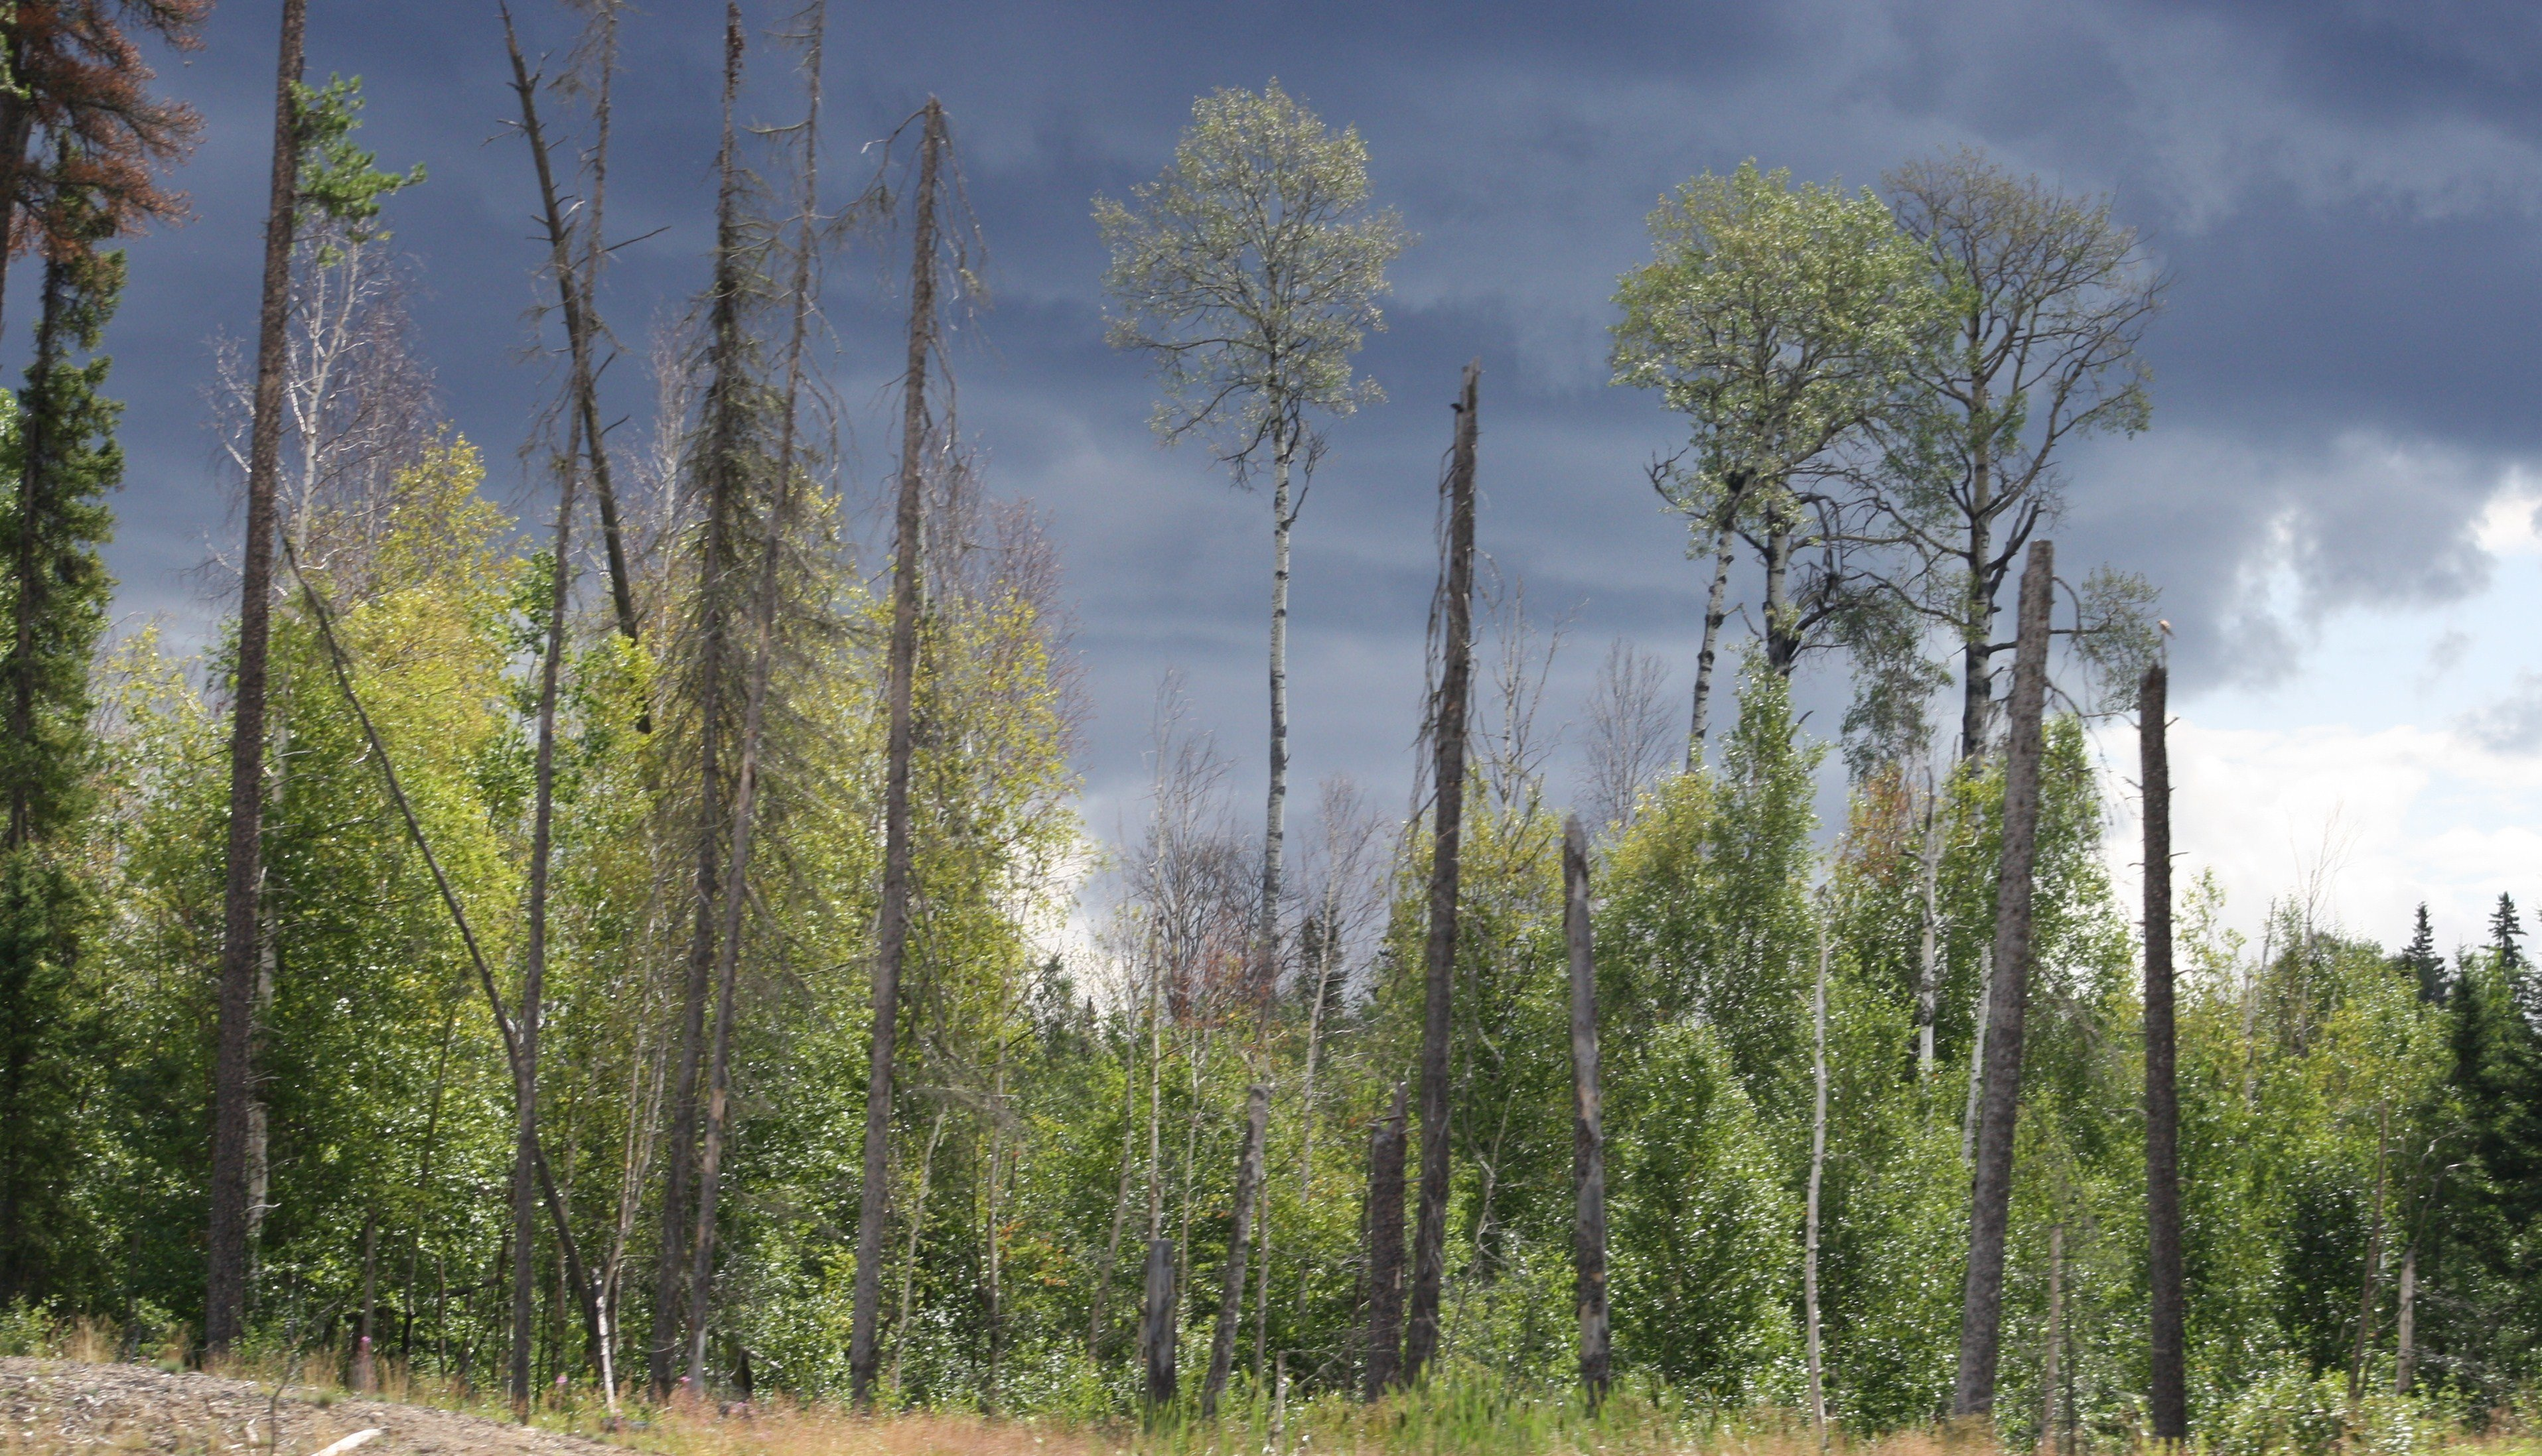 trees under a stormy sky